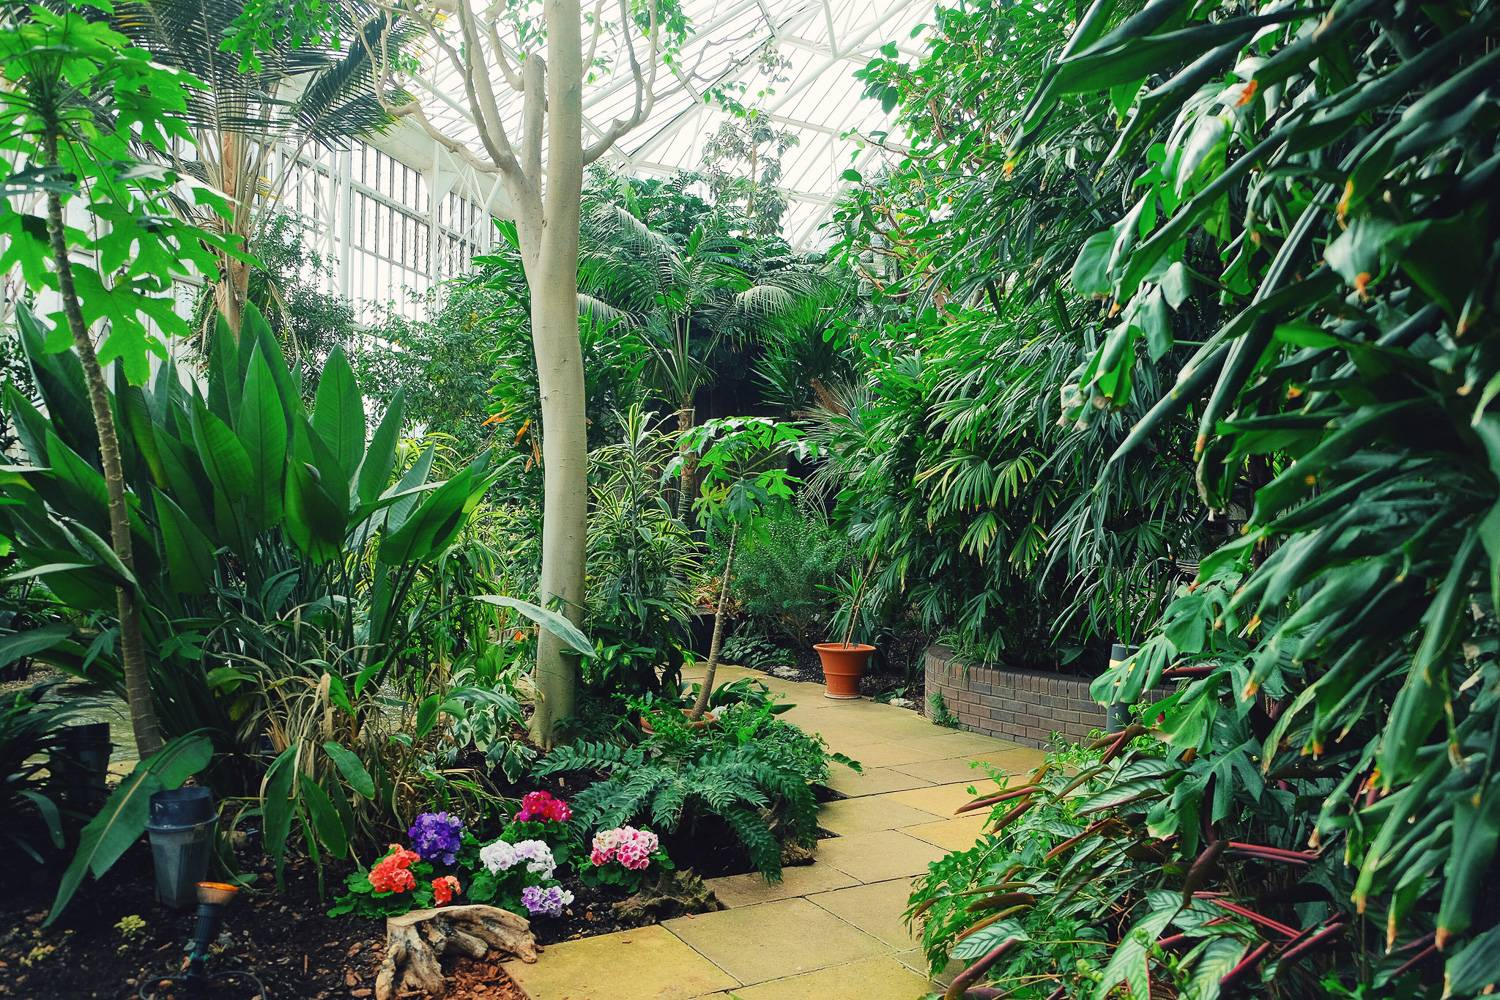 Image of walkway in the Barbican Conservatory surrounded by green plants.